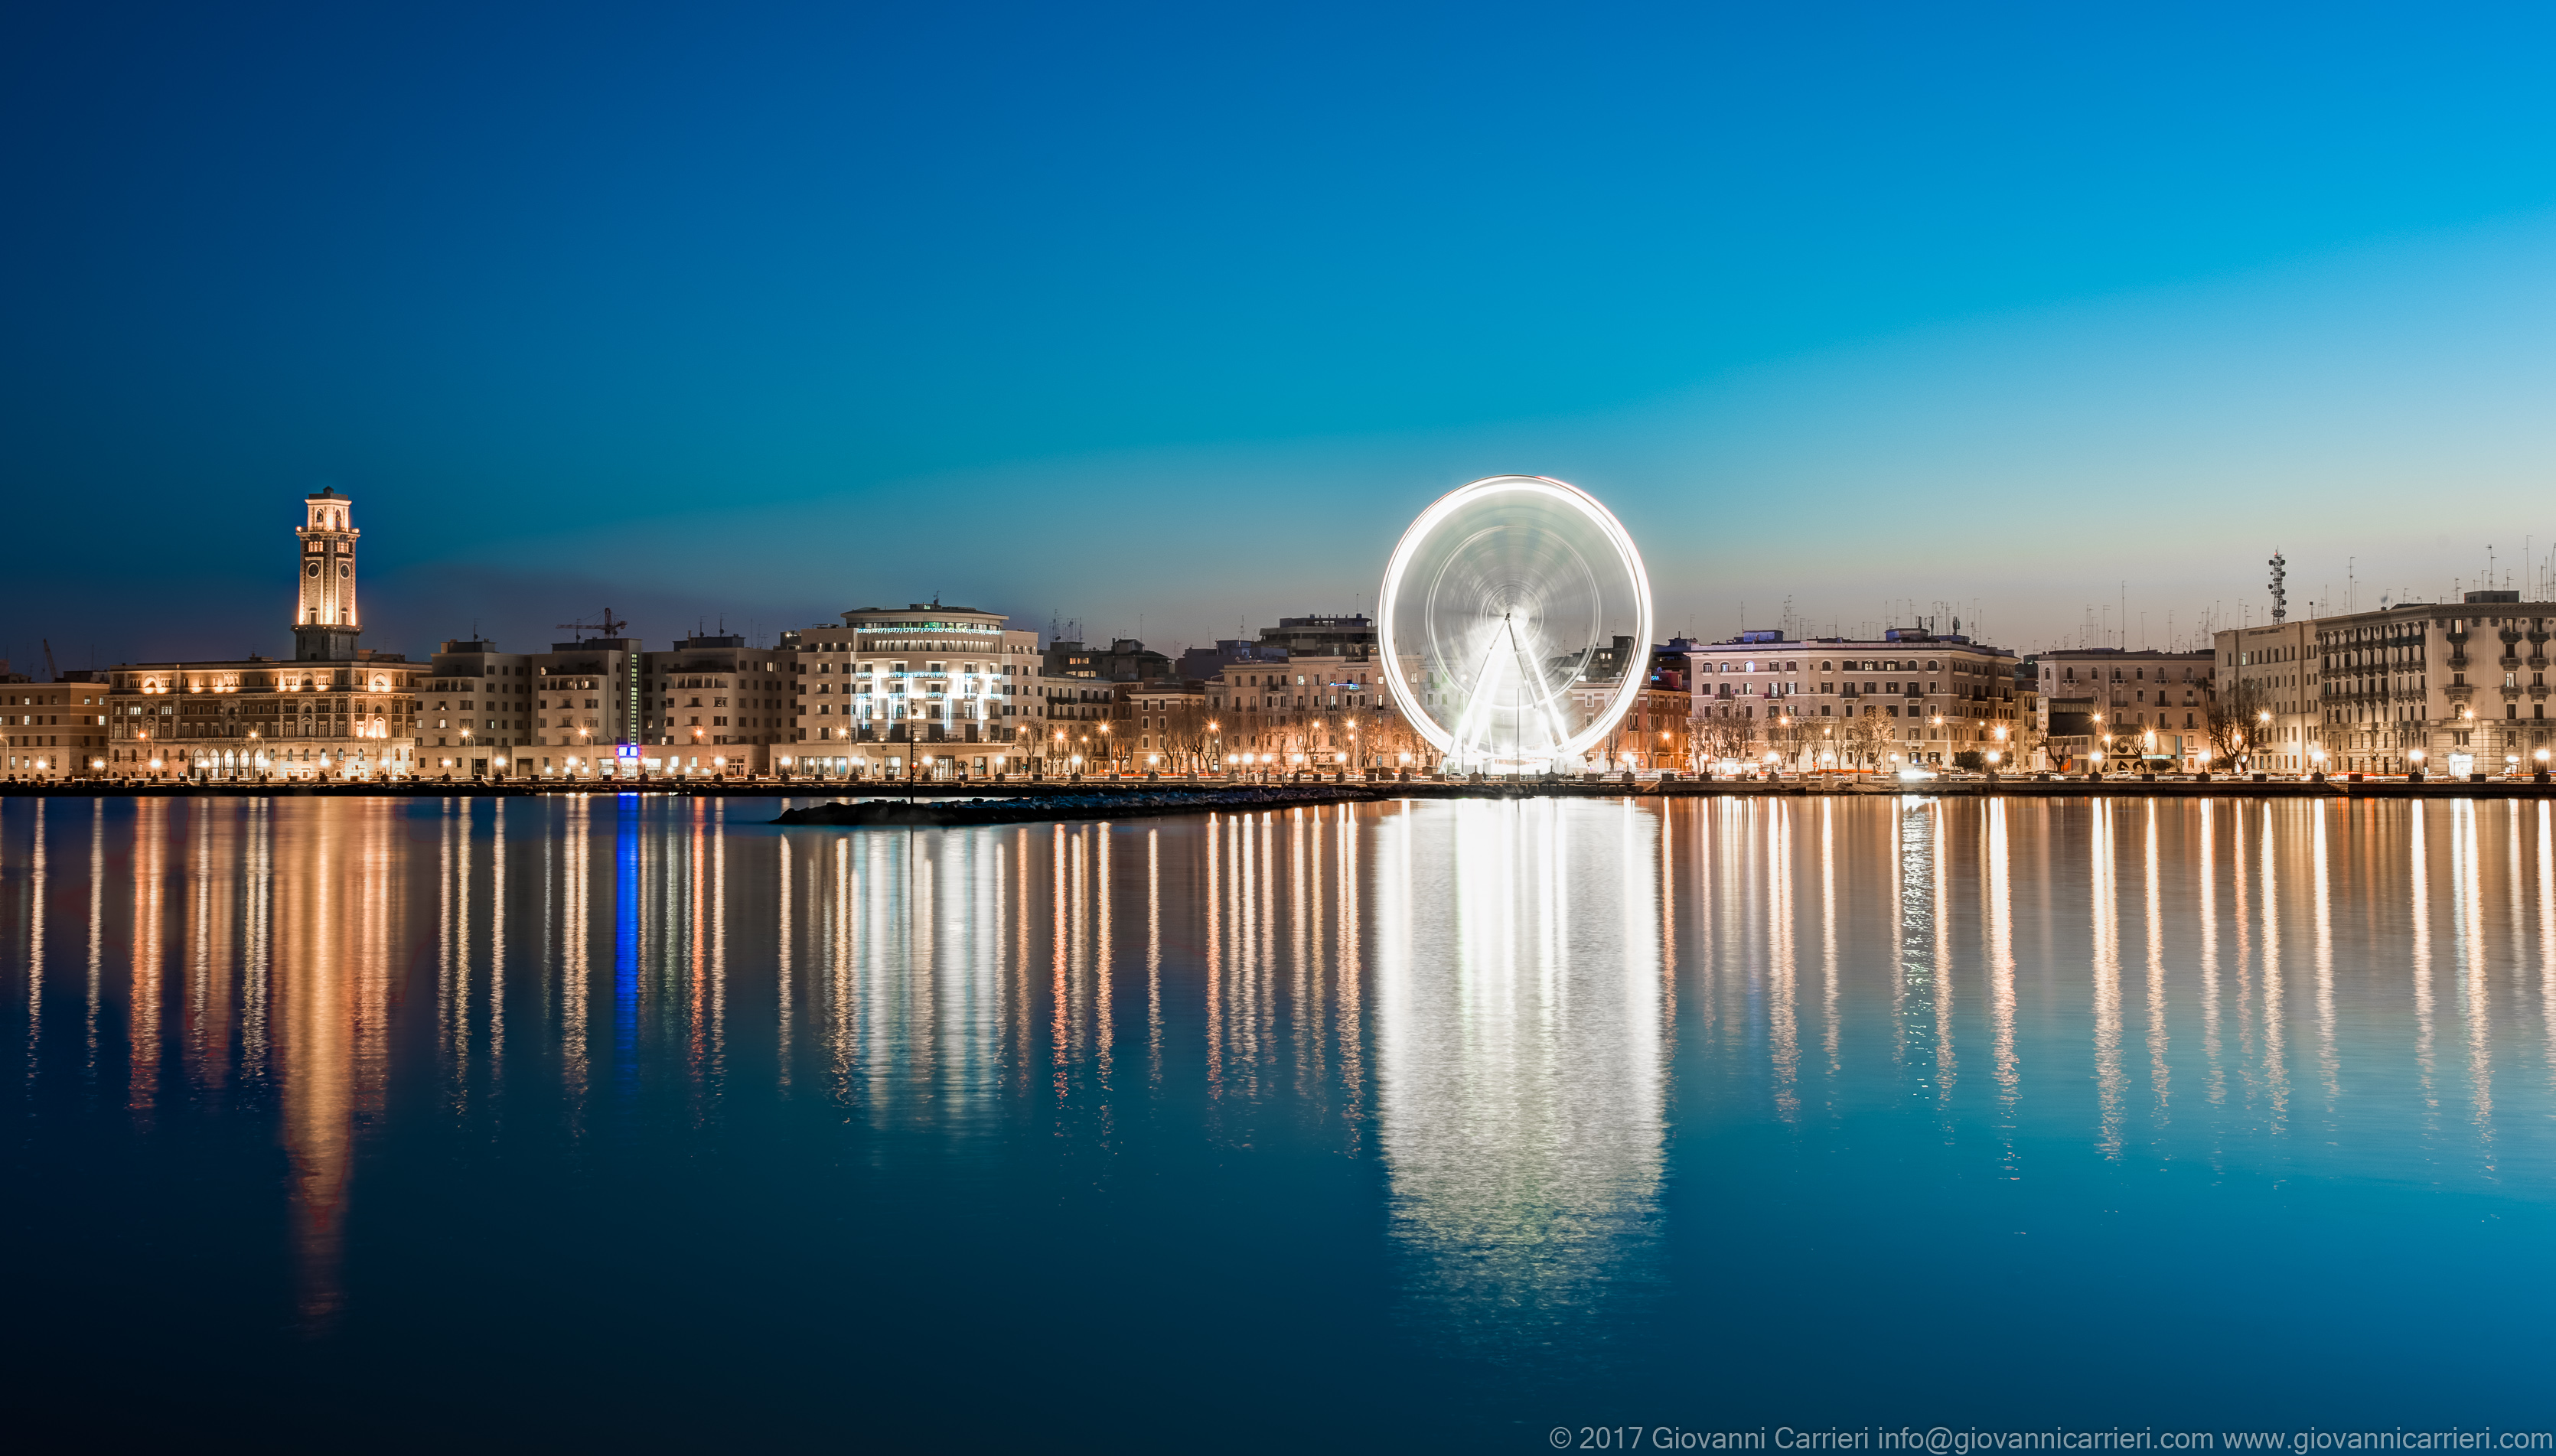 Seafront of Bari and the Ferris wheel